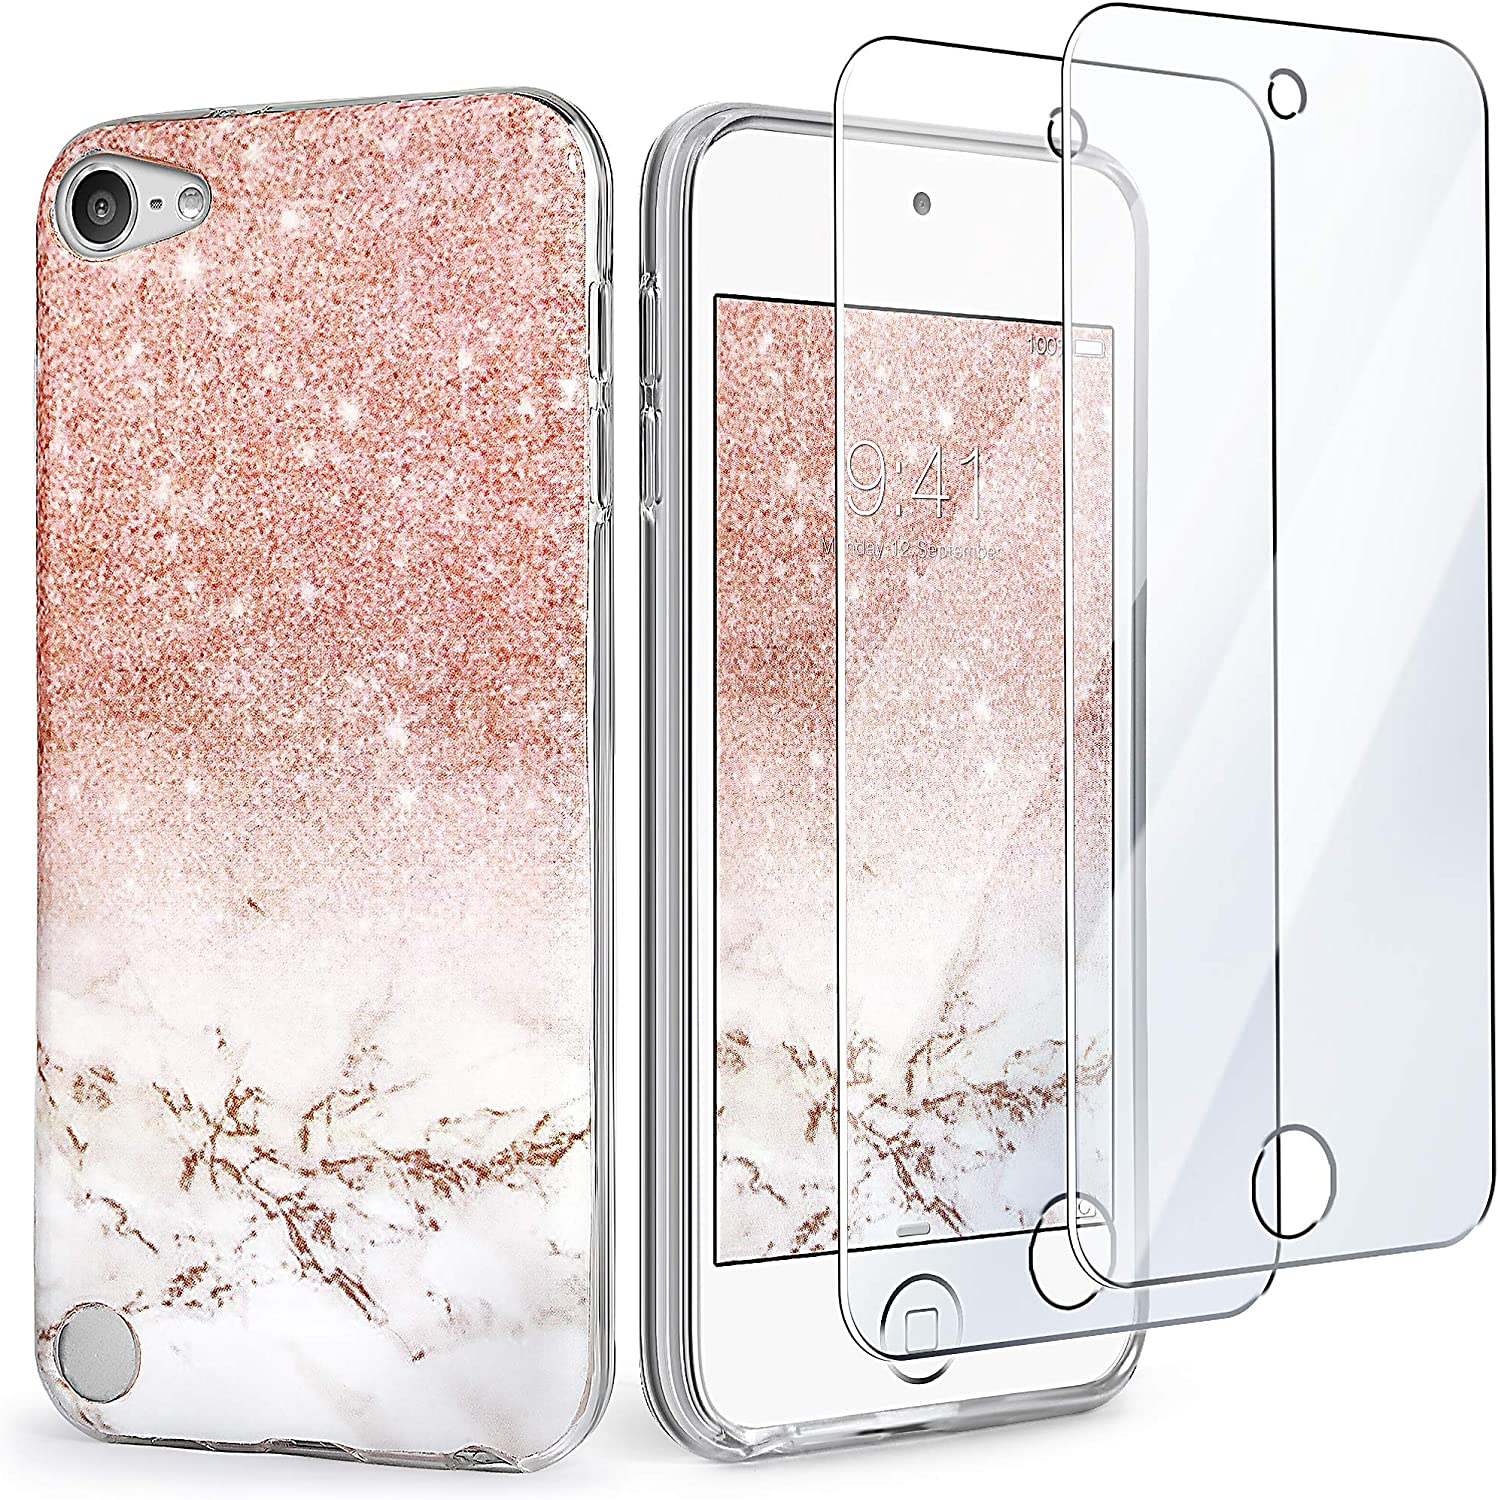 iPod Touch 7th Generation Case with 2 Screen Protectors, IDWELL iPod 6 Case, iPod 5 Case, Slim FIT Anti-Scratch Flexible Soft TPU Bumper Hybrid Shockproof Protective Cover, Glitter Rose Gold Marble